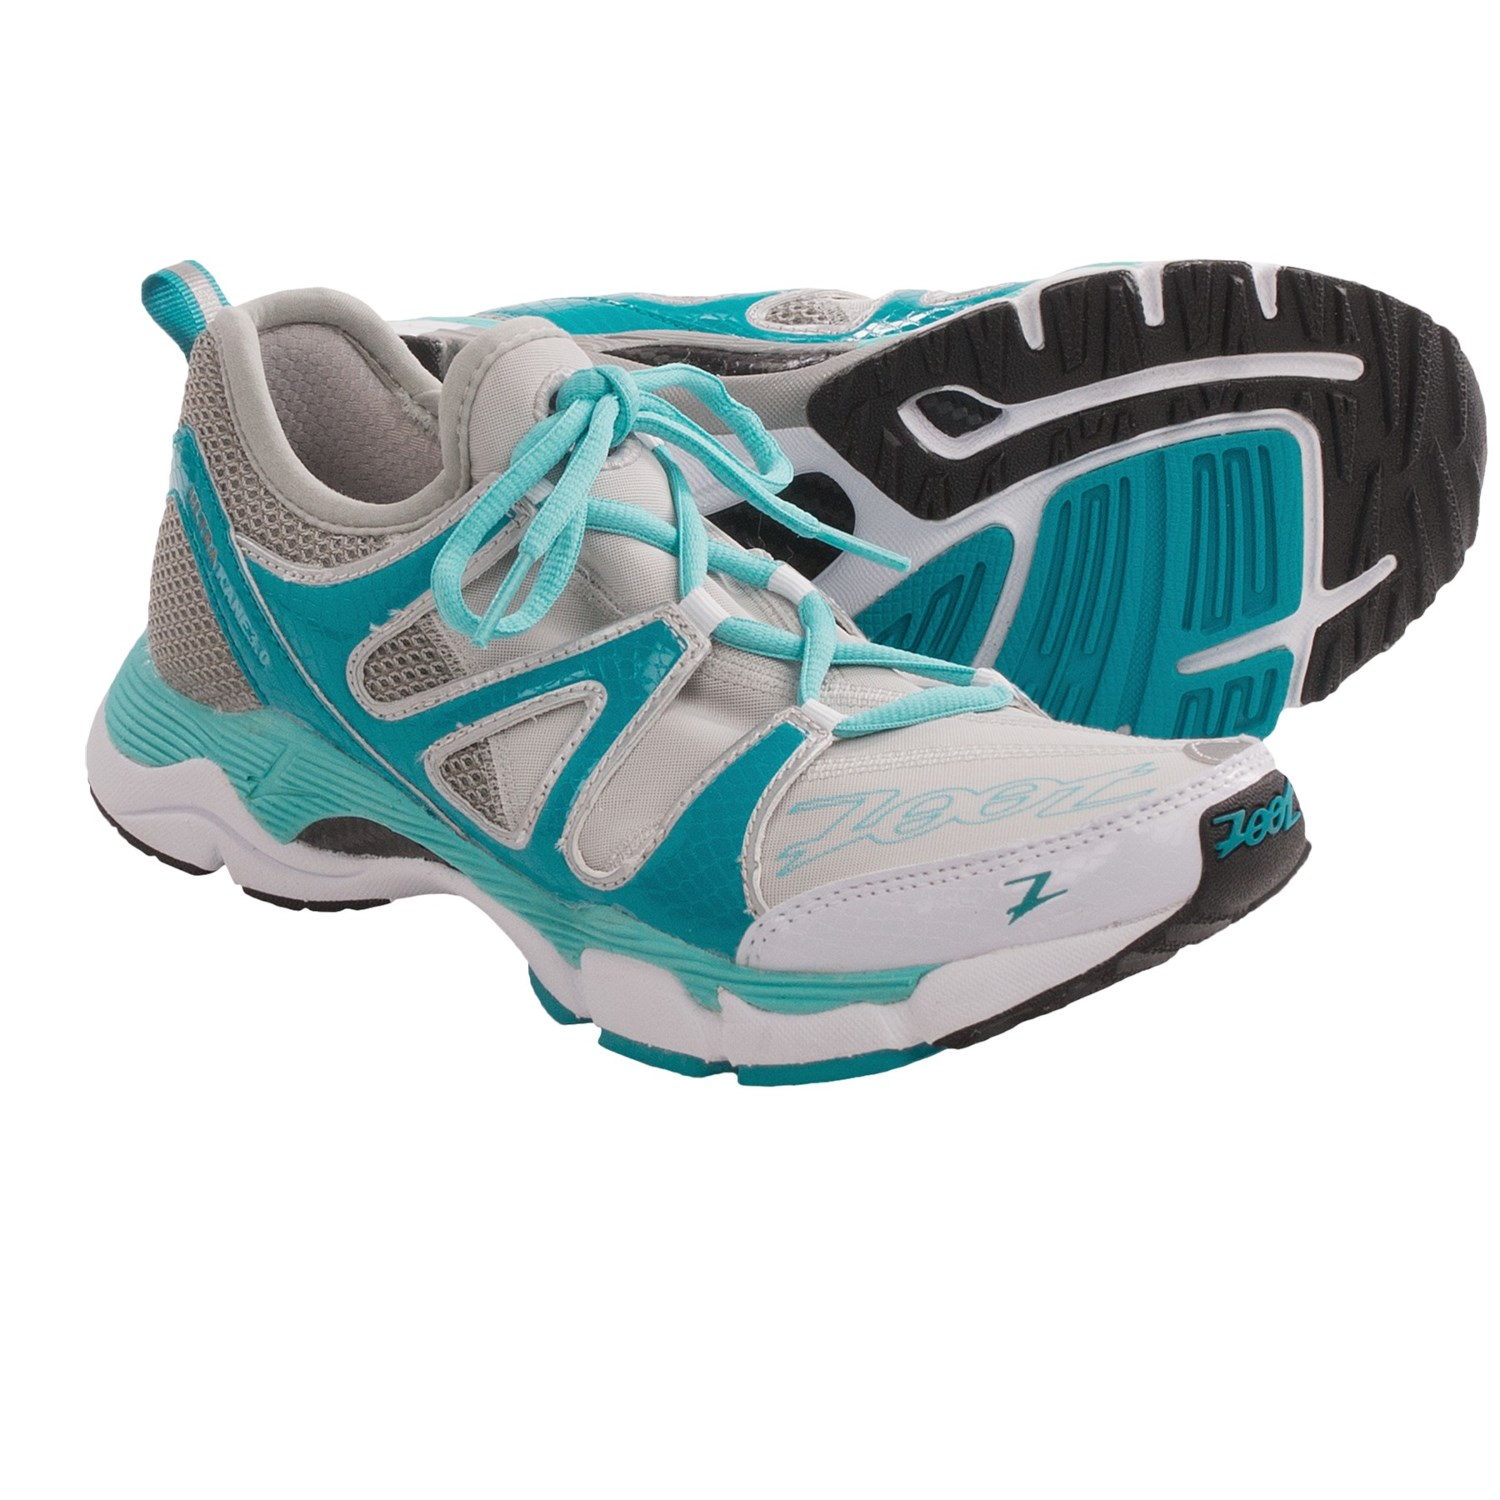 Zoot Sports Ultra Kane 3.0 Running Shoes (For Women) in Light Grey